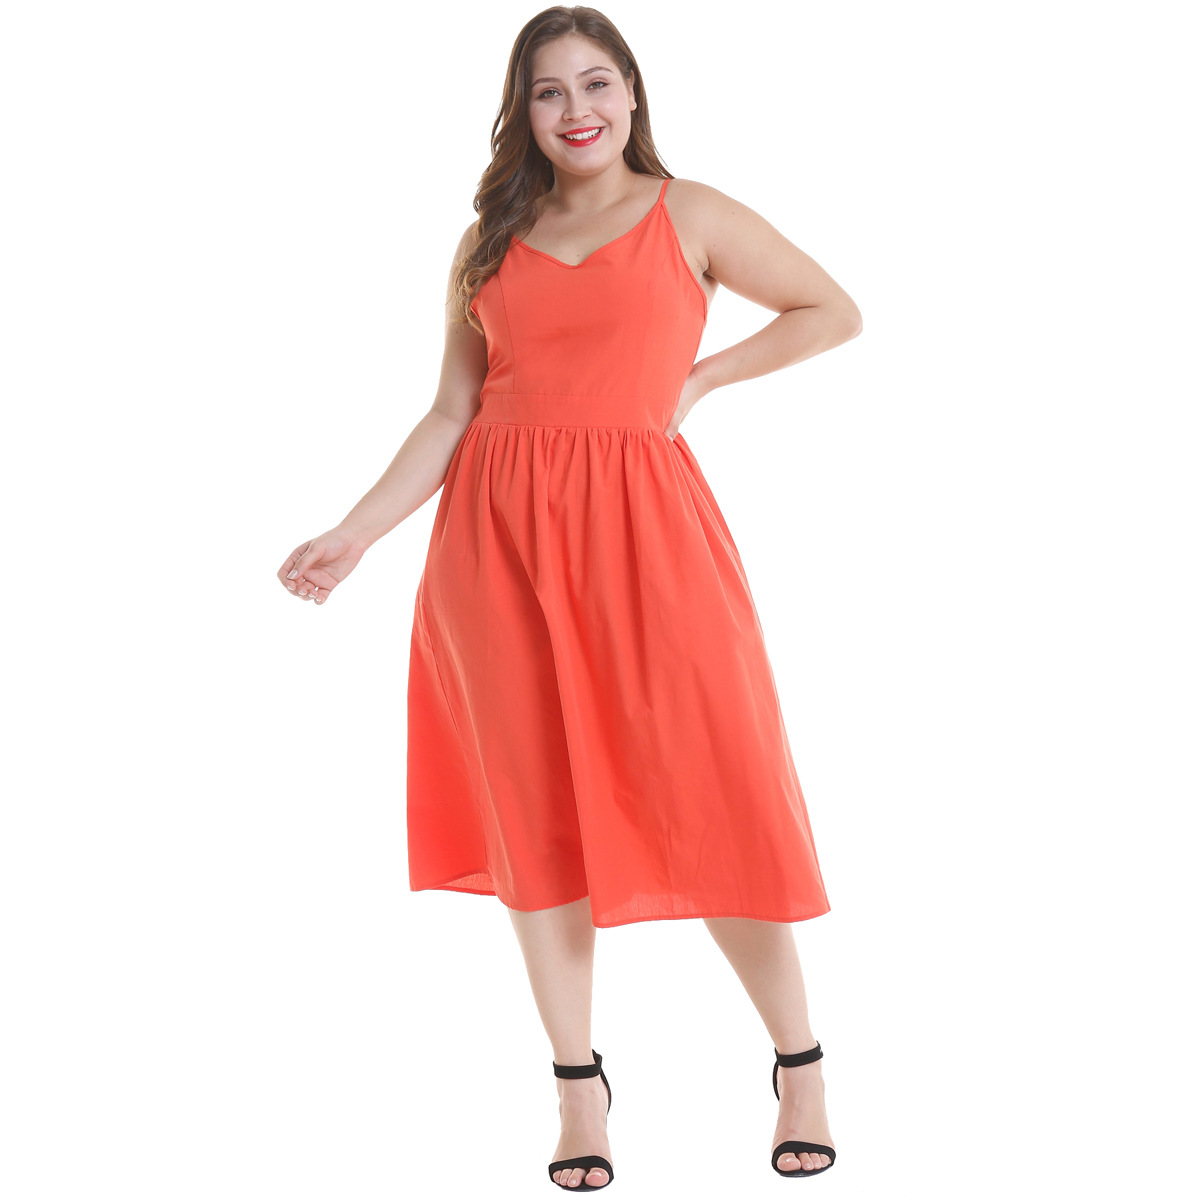 Large women 39 s dress with suspender in pure color A large dress black dress omighty Polyester Casual Solid V Neck in Dresses from Women 39 s Clothing